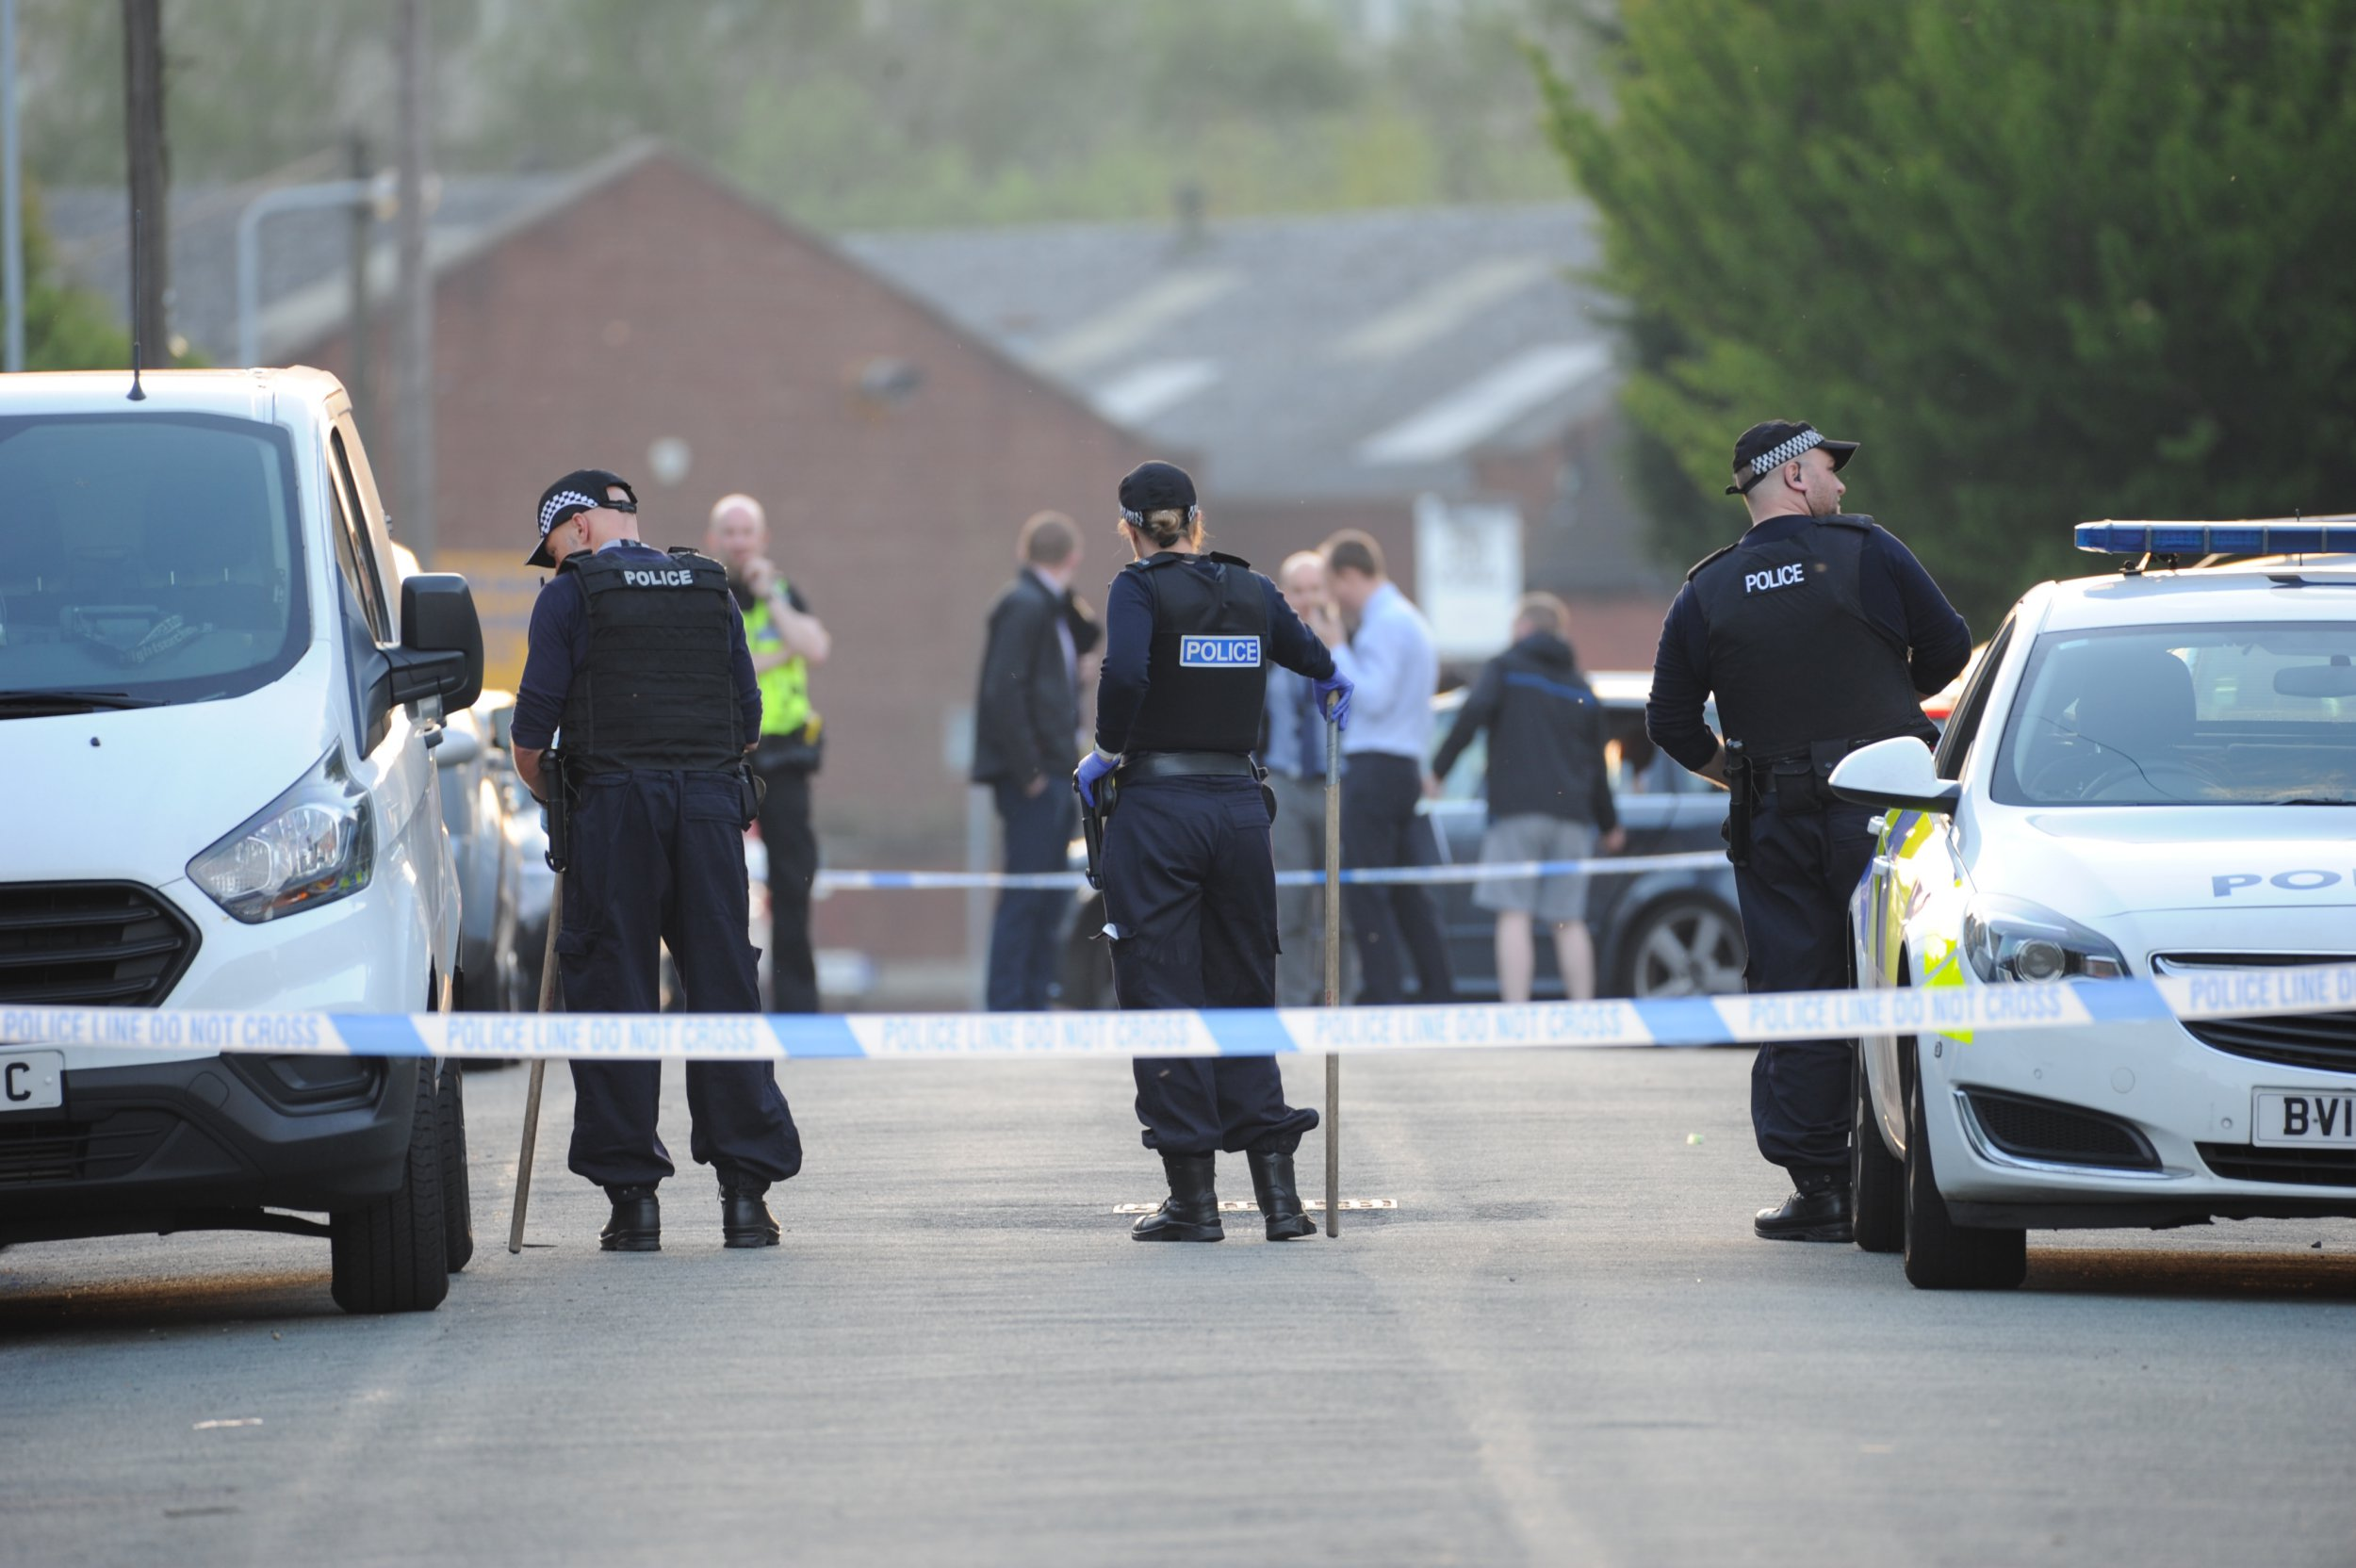 Pictured, 19/4/19 Police statement after 6 year old boy shot Wolverhampton We've launched an investigation after a child was injured after shots were fired at a house in #Wolverhampton just before 4pm this afternoon (Friday 19 April). It???s understood a group of men fired shots at a house in Ashbourne Road in the #Eastfield area of the city. A six-year-old boy, thought to be inside the house at the time, sustained injuries to his back and hand which fortunately aren???t thought to be life-threatening. This was a shocking incident where someone has opened fire with a shotgun in the middle of the day. A child has been injured and we need to establish exactly what has happened. The motive of this attack is not clear at this stage, but it???s clearly a hugely reckless act and we need to identify those responsible as soon as possible. We have extra officers, including armed officers, in the area as we???ve increased patrols to support and reassure the community during this concerning time. We???re doing all we can to find the offenders and as part of our investigation, CCTV is being examined and witnesses are being spoken to. If anyone was in the area at the time and saw what happened we would urge them to get in touch. Anyone with information can contact West Midlands Police on 101 or Live Chat via WMP Online between 8am and midnight. Alternatively people can call the charity Crimestoppers anonymously on 0800 555 111; callers won???t be asked for their names and calls cannot be traced. Please quote log number 1591 of 19 April.